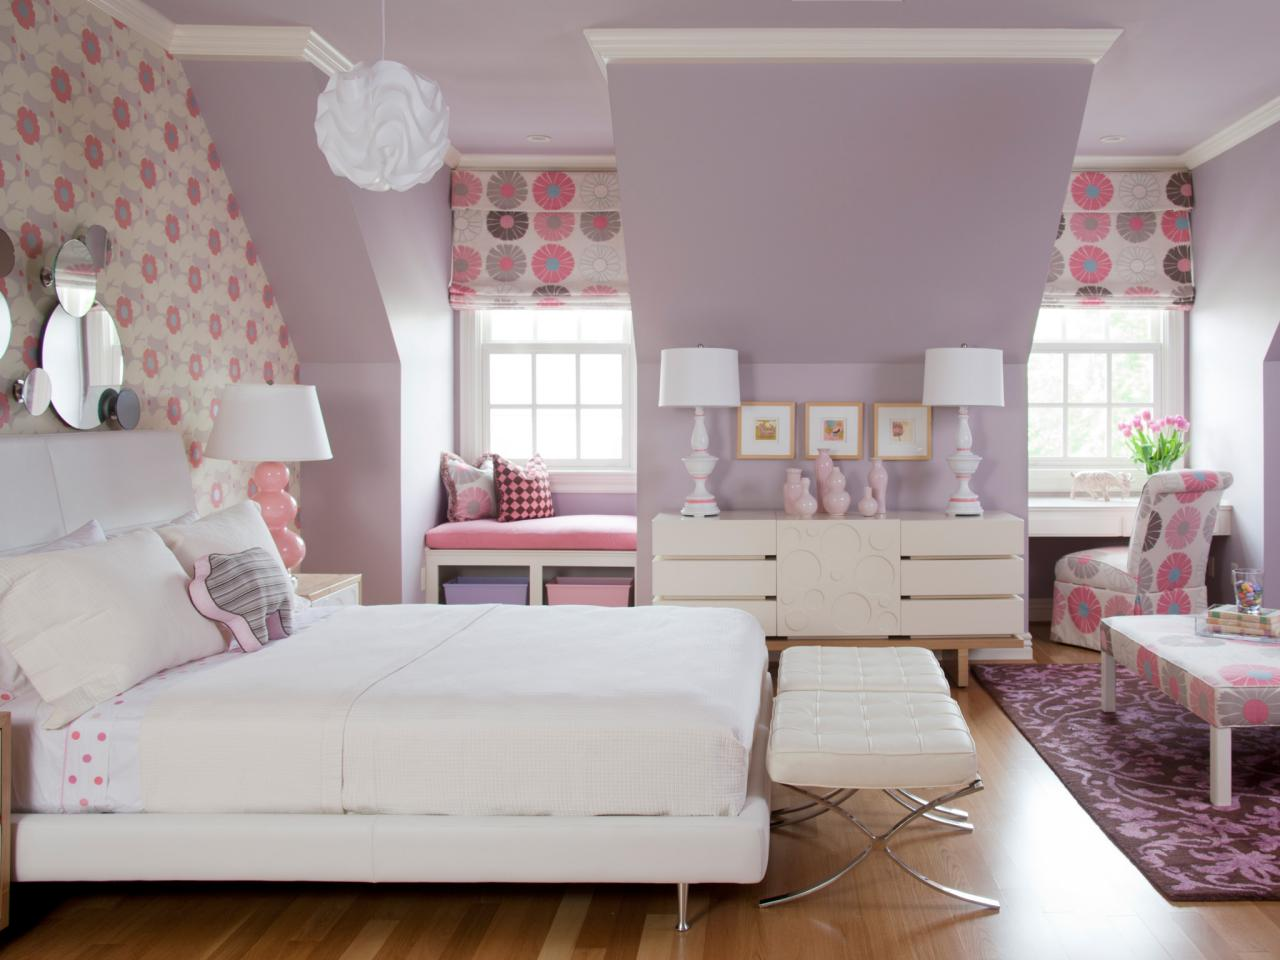 Bedroom Paint Color Ideas Pictures Options HGTV - Bedroom wall design ideas for teenagers